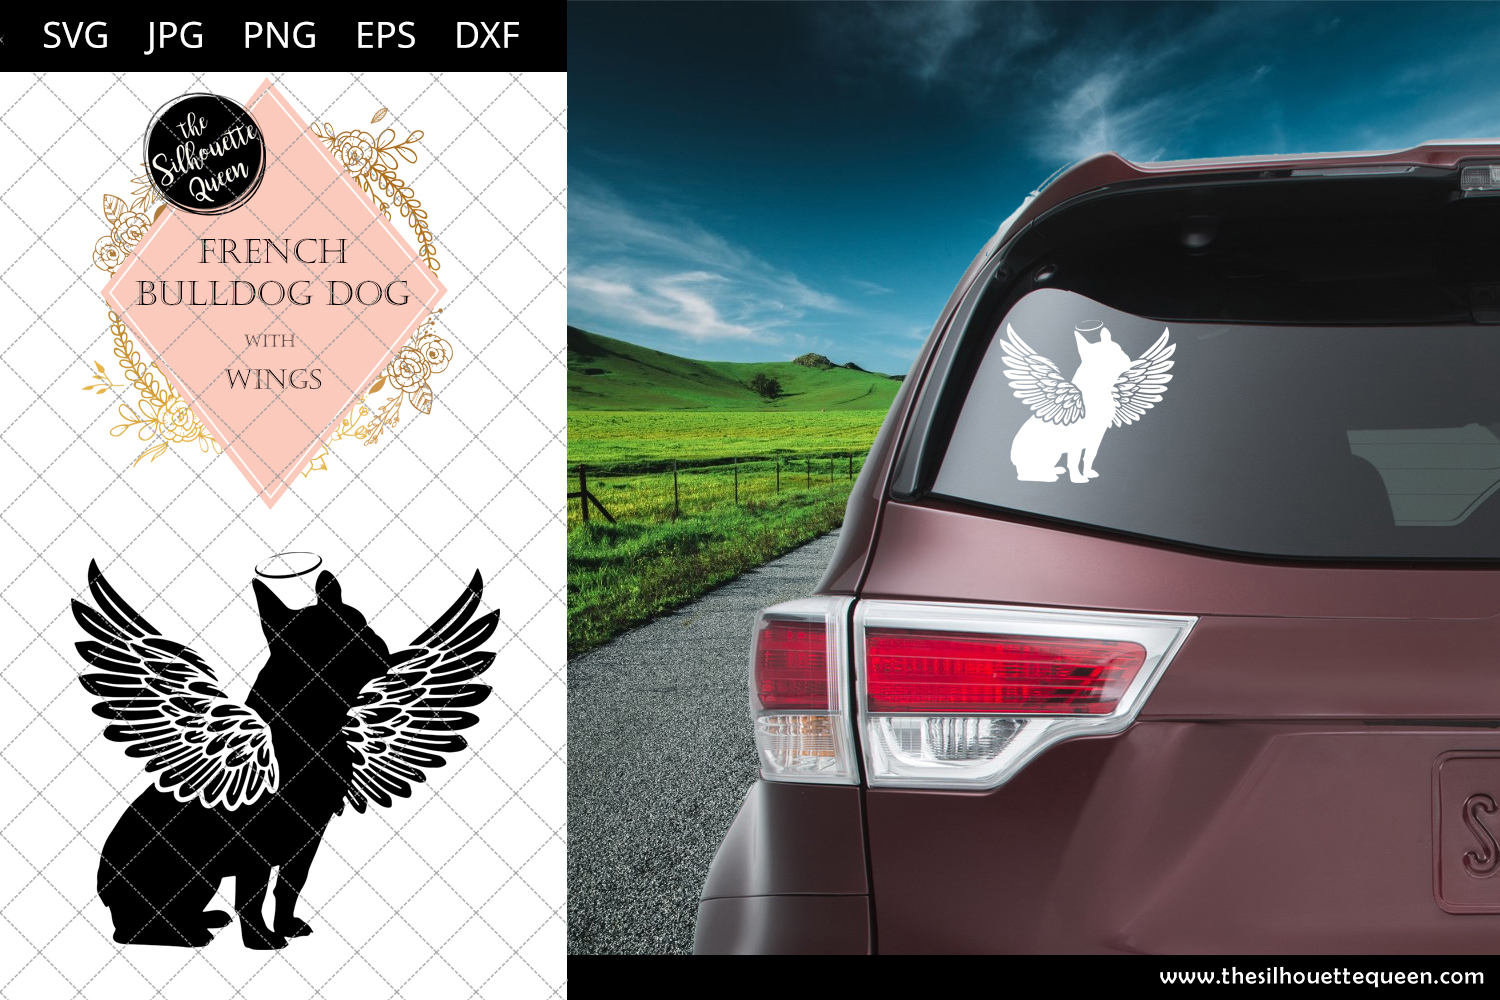 Download Free French Bulldog Dog 9 With Wings Graphic By for Cricut Explore, Silhouette and other cutting machines.